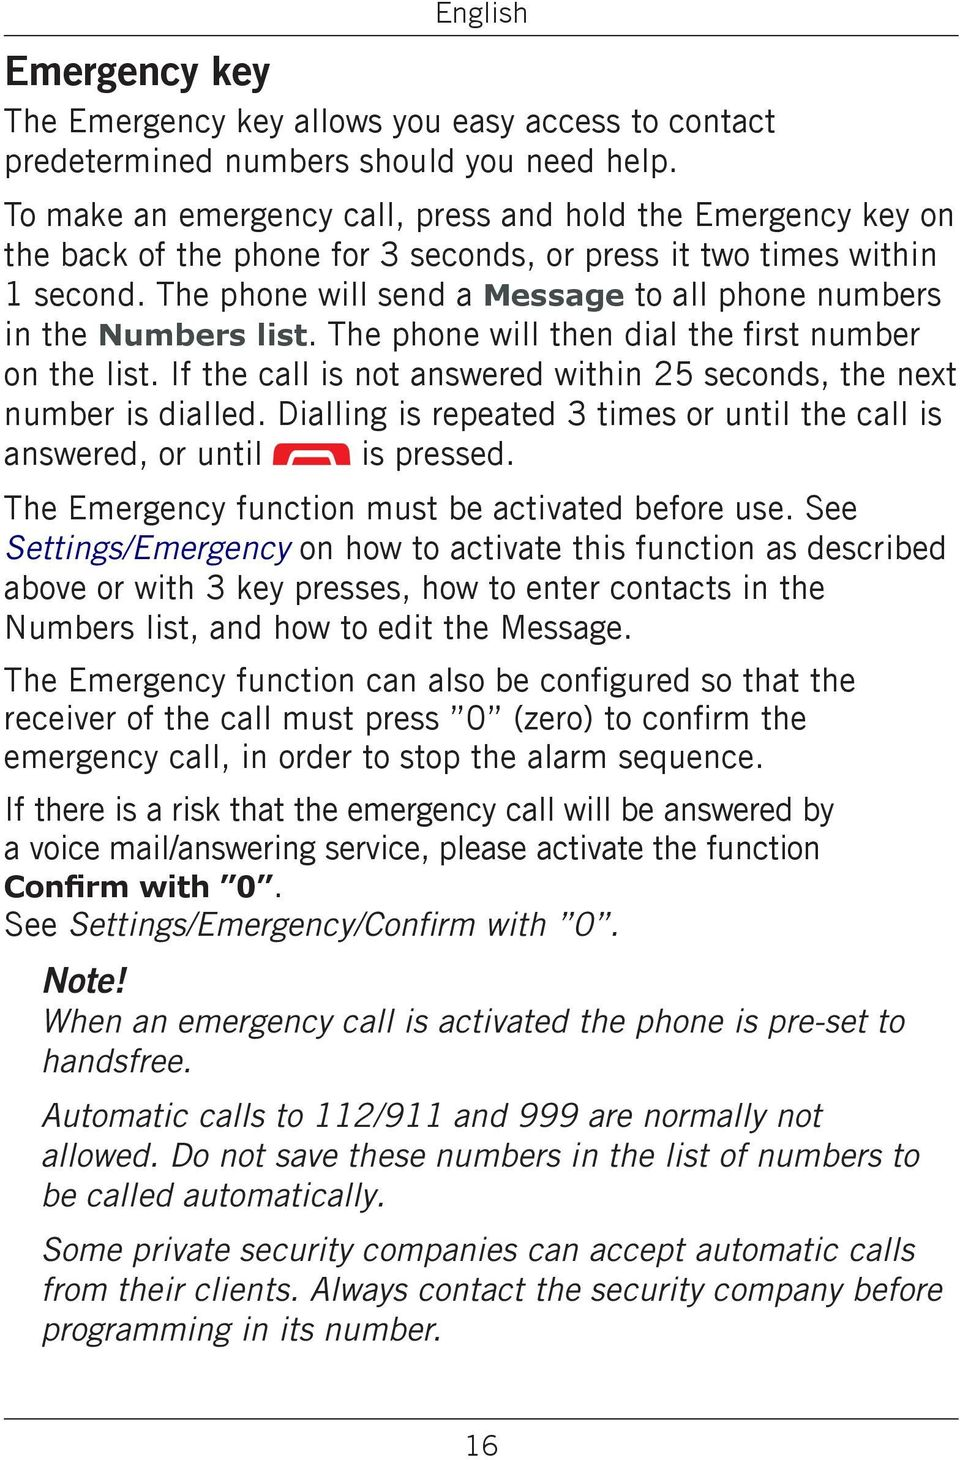 The phone will send a Message to all phone numbers in the Numbers list. The phone will then dial the first number on the list.